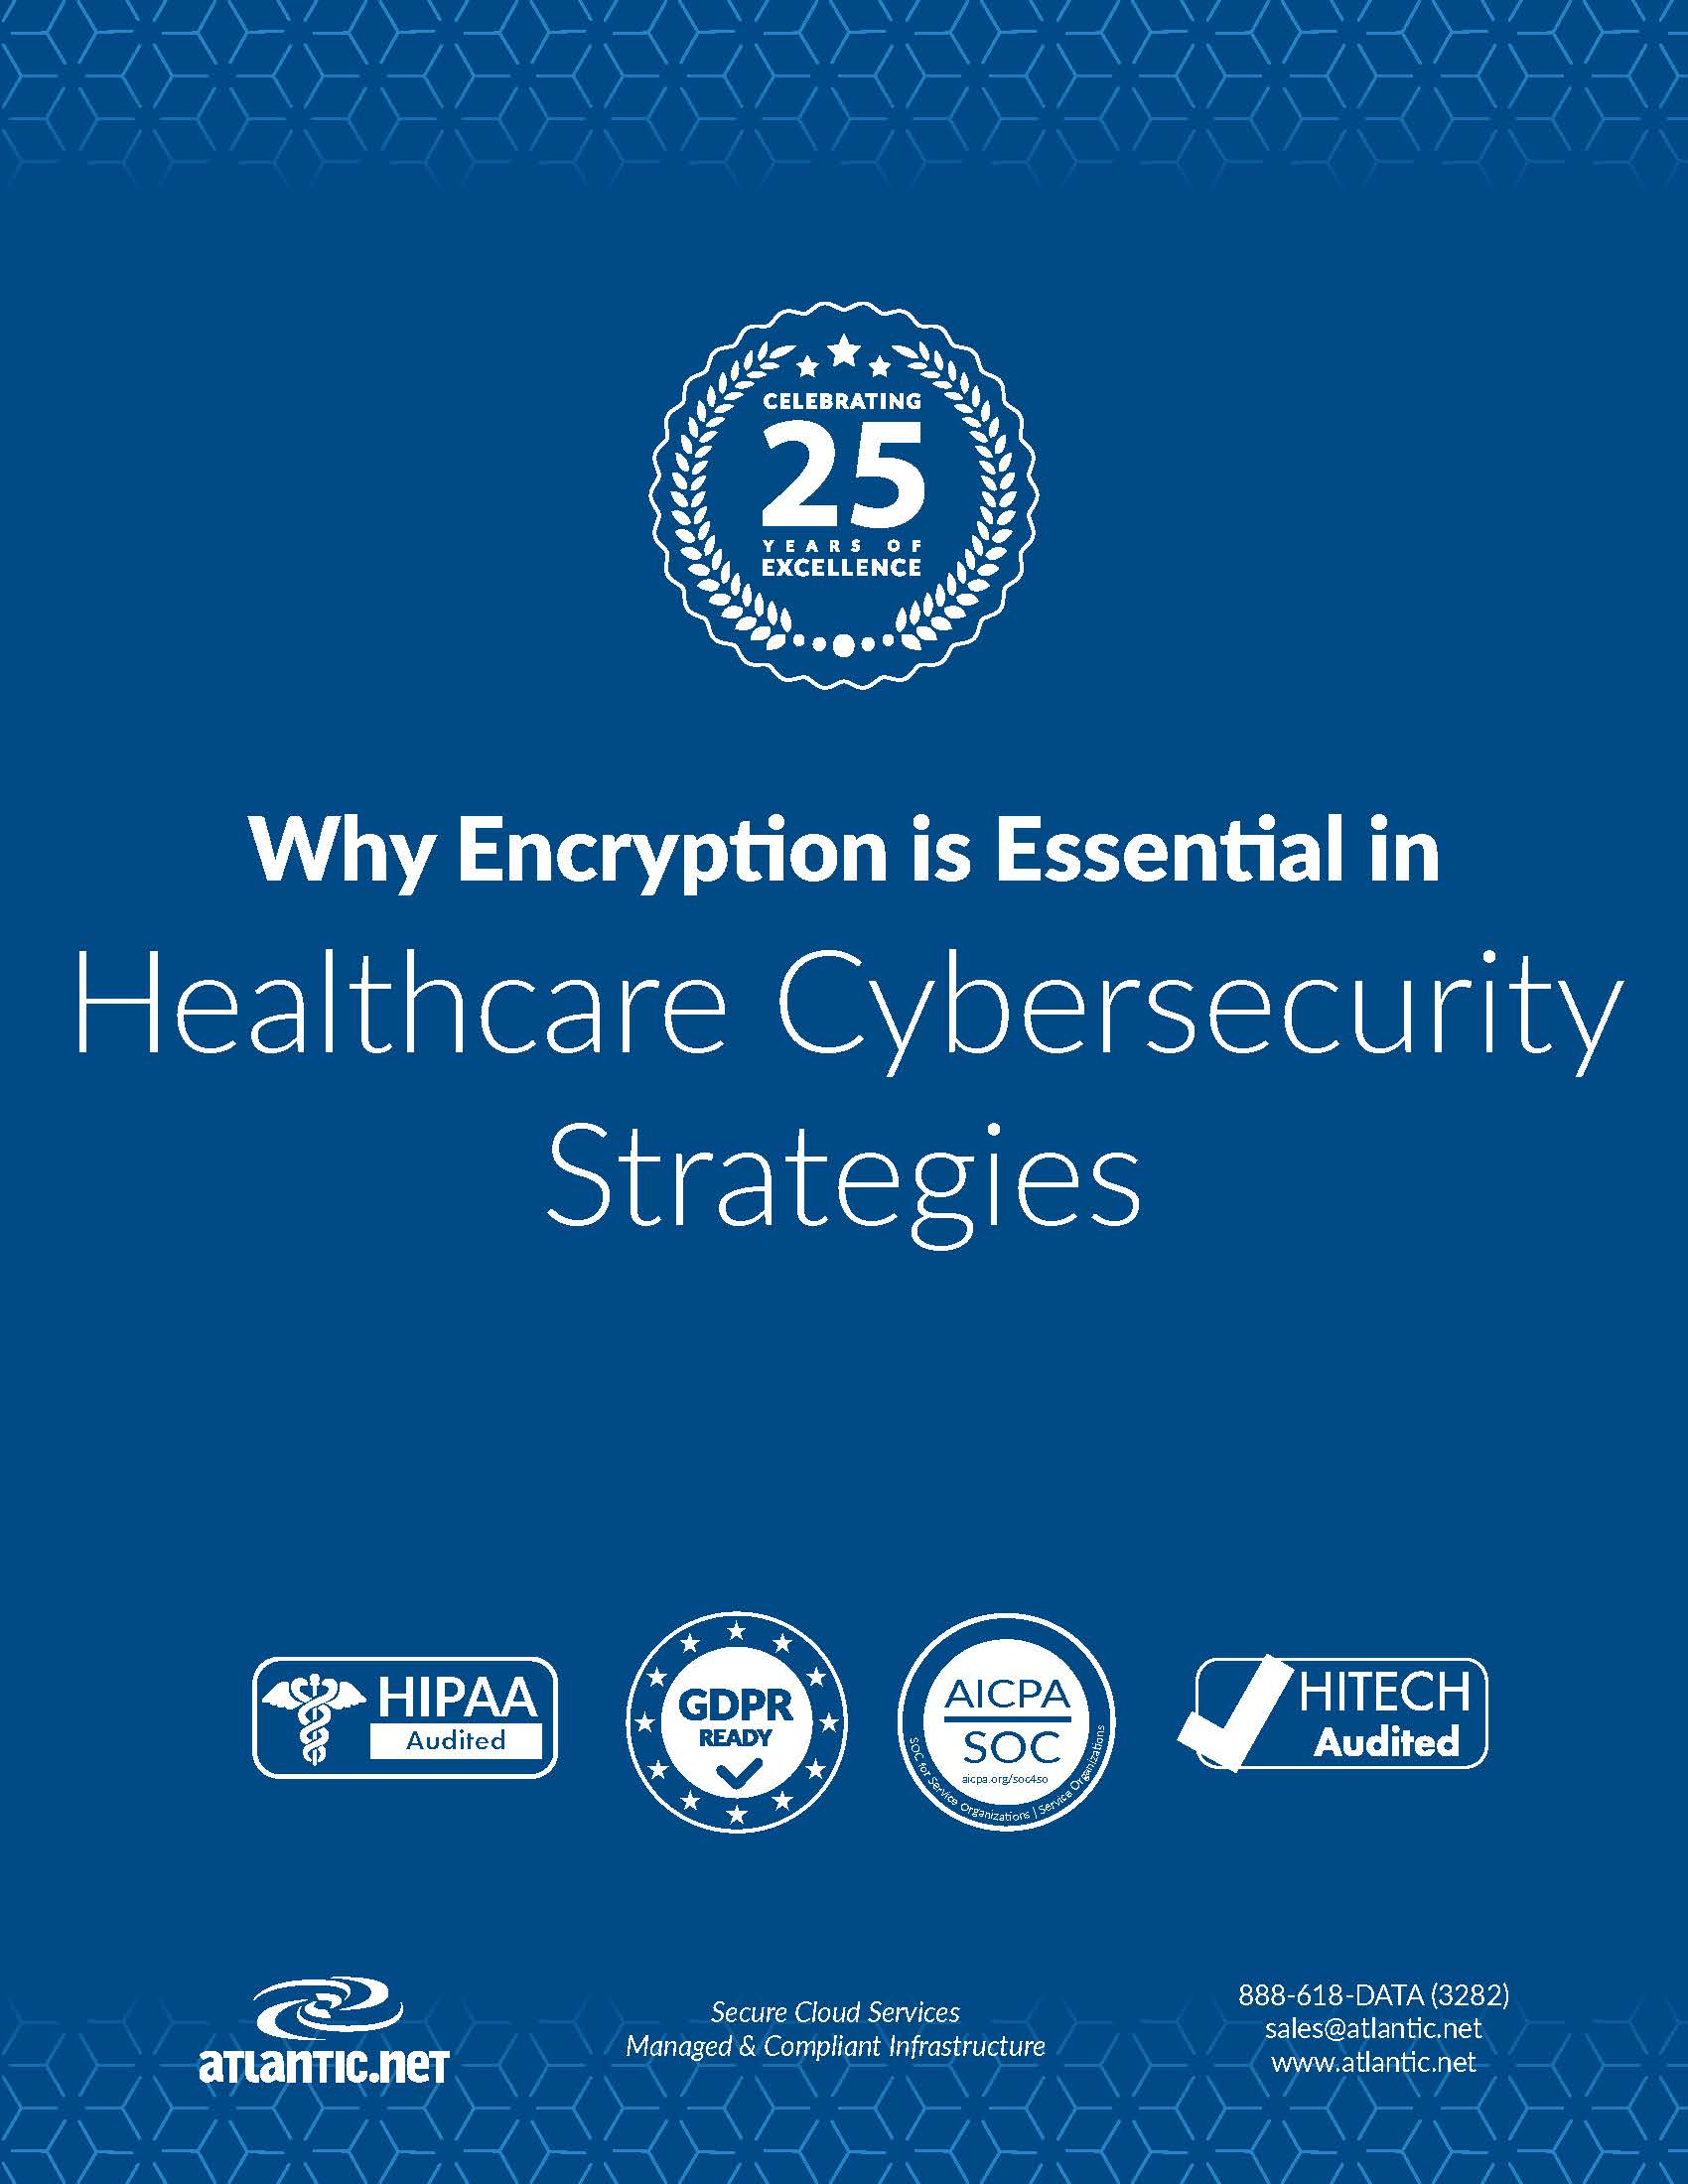 Why Encryption is Essential in Healthcare Cybersecurity